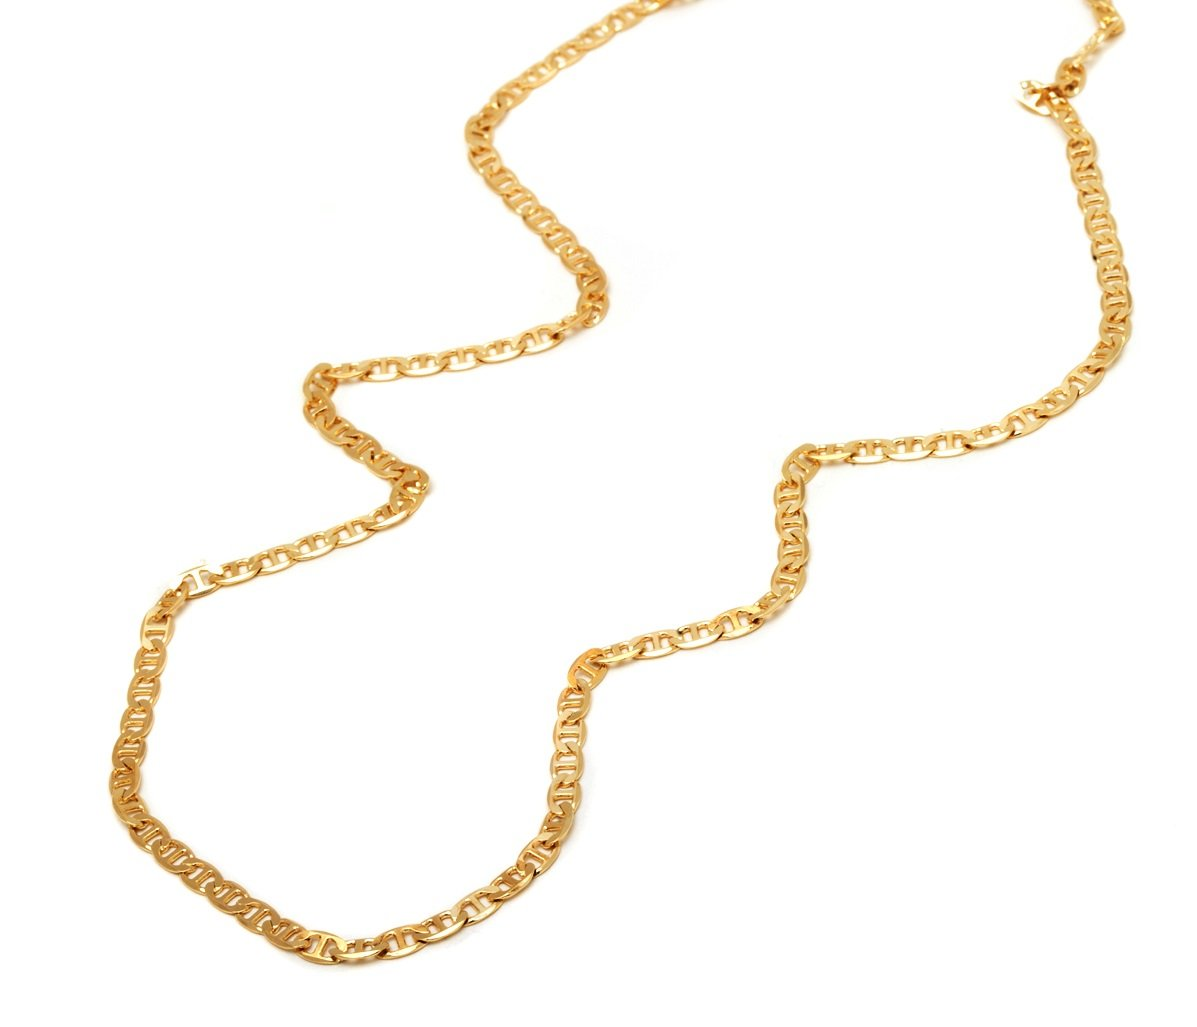 18 Karat Yellow Gold 3.2mm Thick Mariner Link Chain Necklace - Marina Link - Made In Italy- 20''